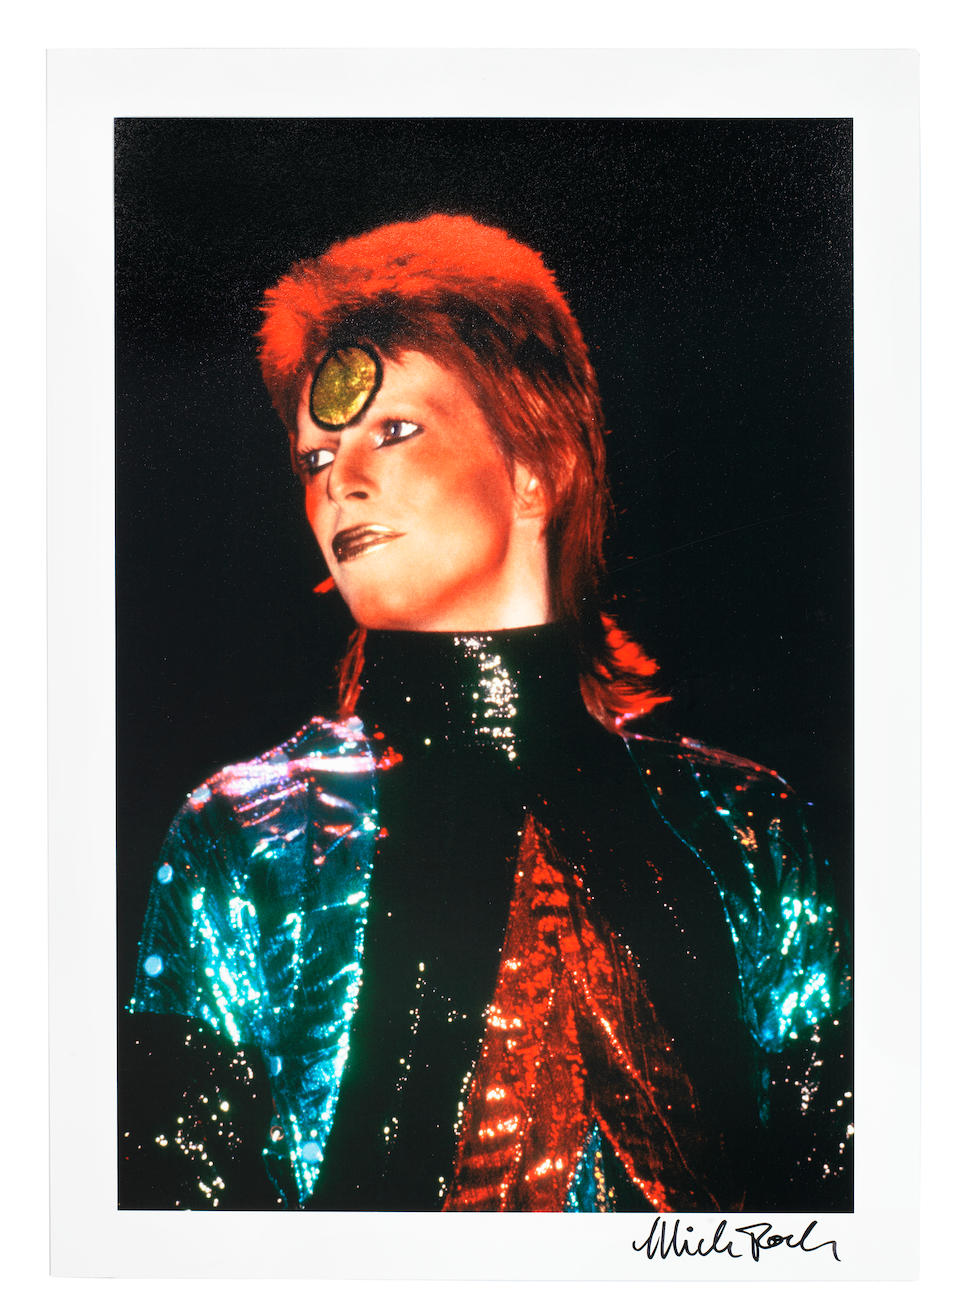 David Bowie: 'The Rise of David Bowie 1972-1973' by Mick Rock, Taschen, 2015,